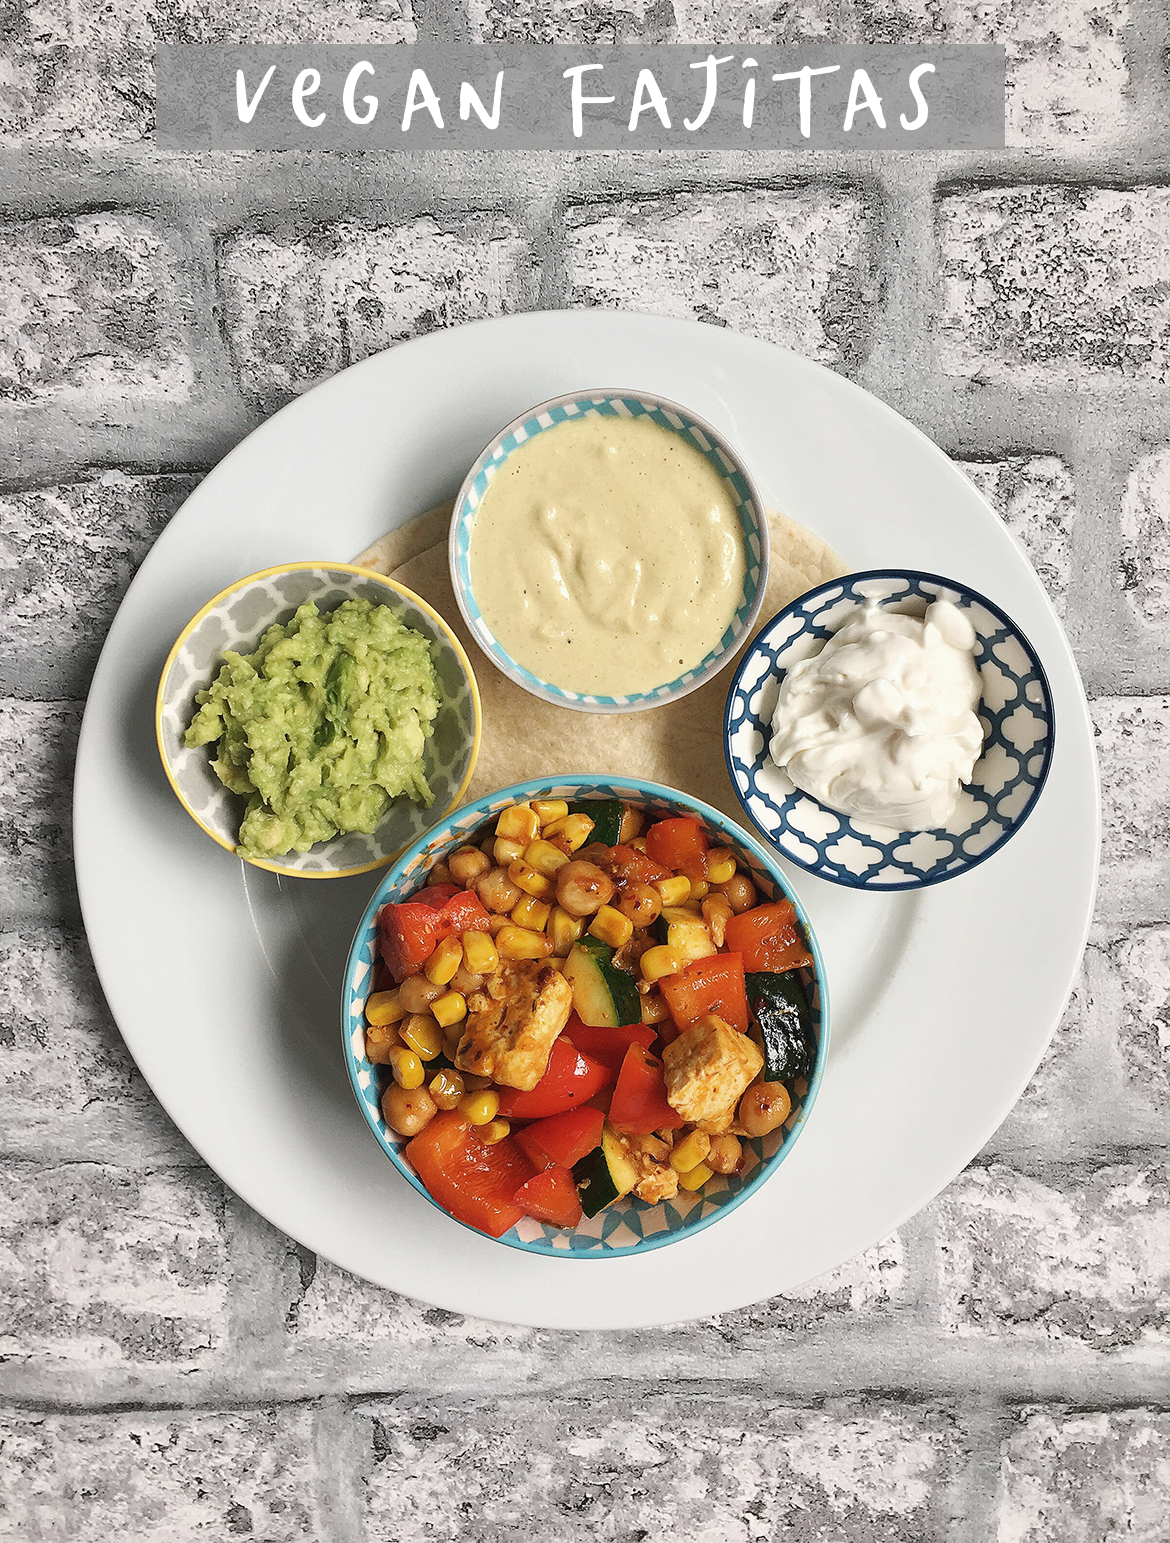 vegan fajitas living on leaves vegan family meal ideas